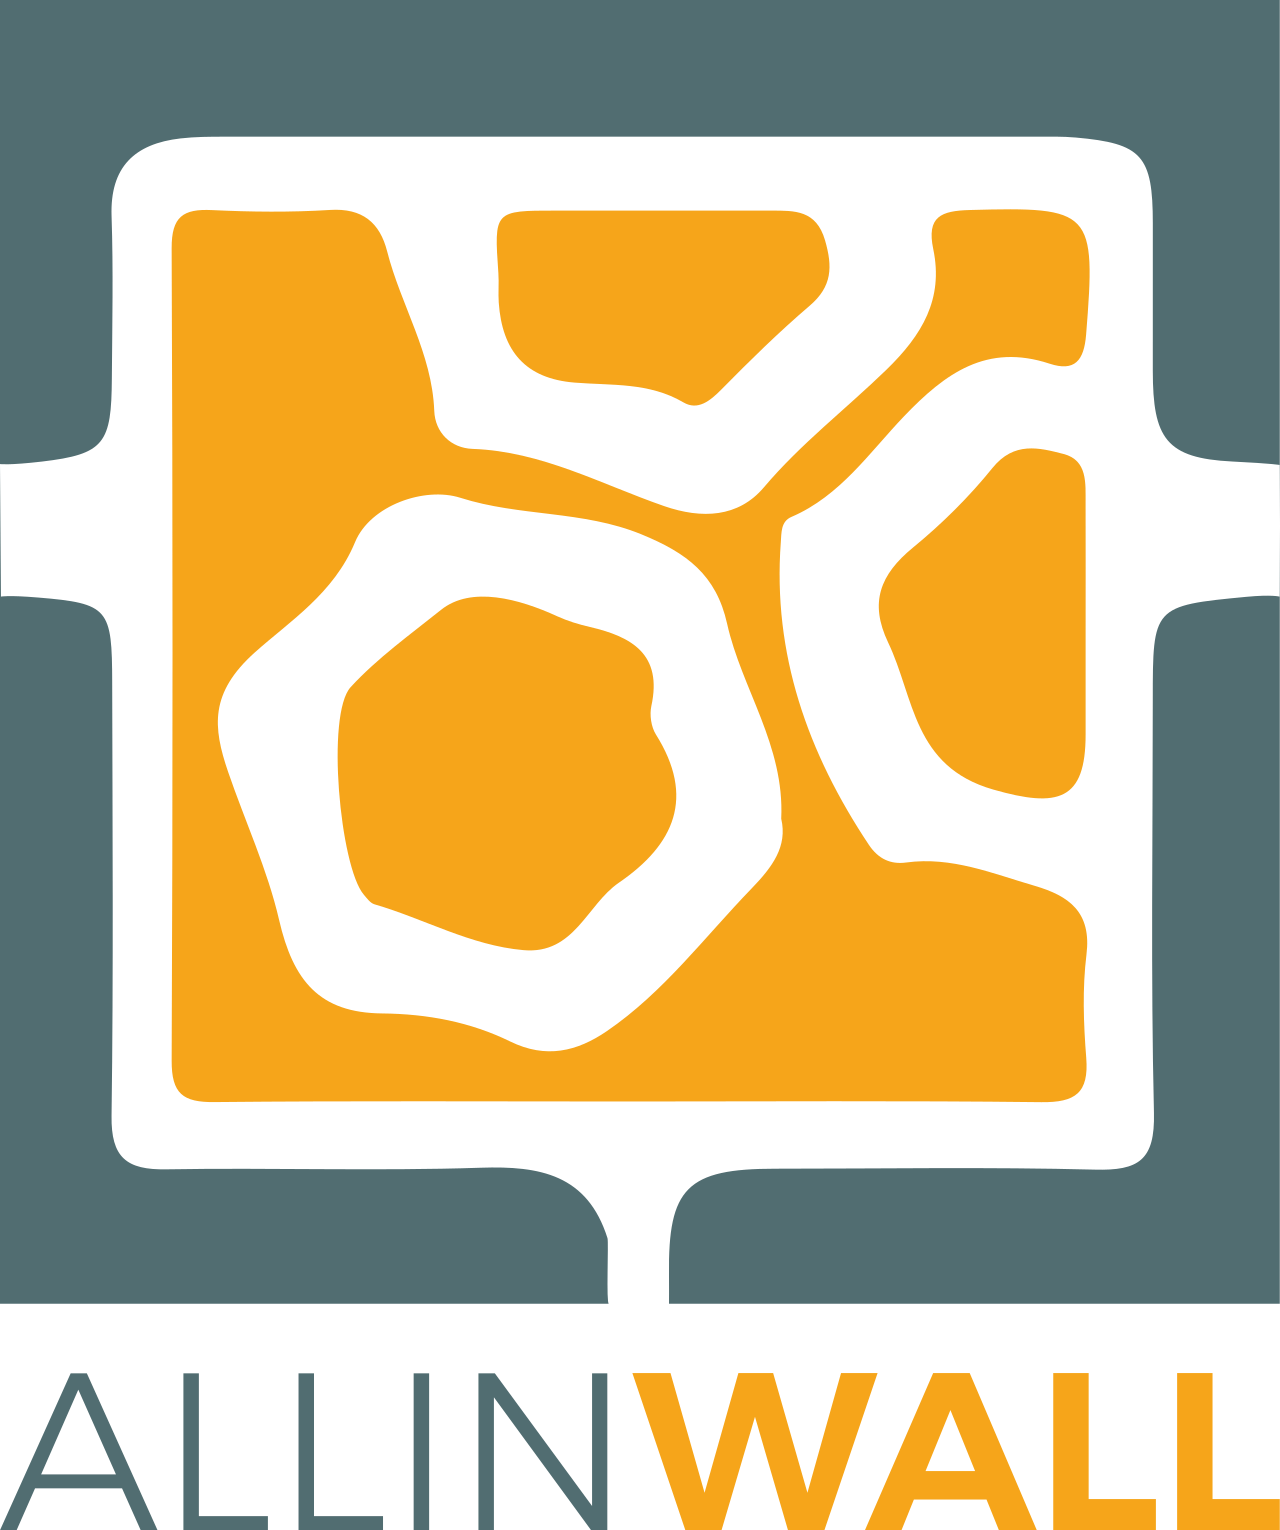 allinwall logo box dark